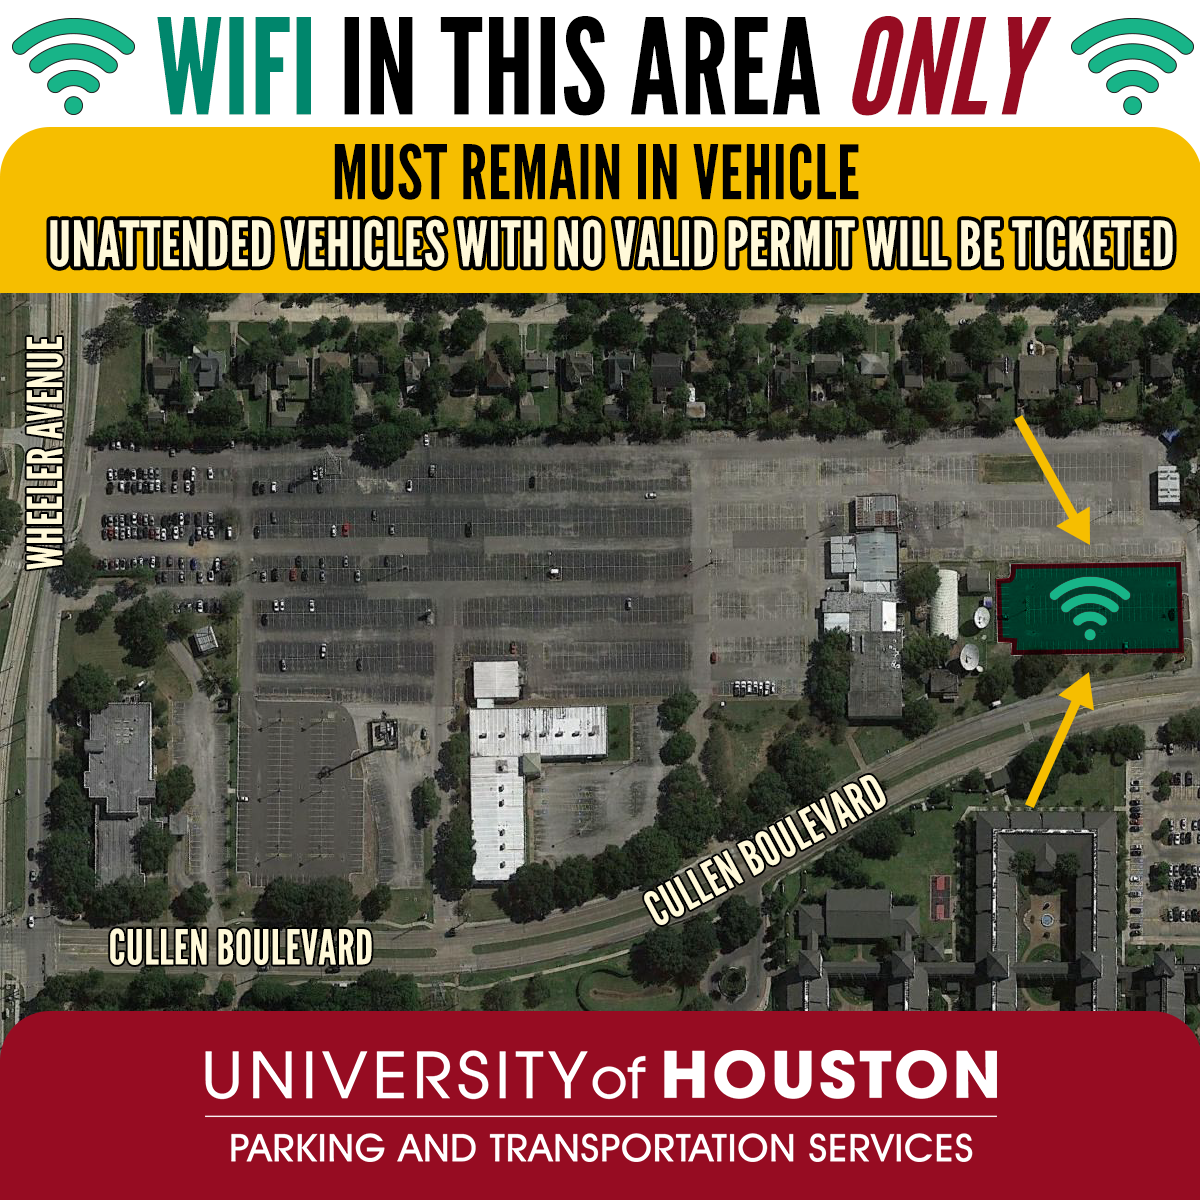 Uh Christmas Break 2020 A&F Parking and Transportation Services   University of Houston